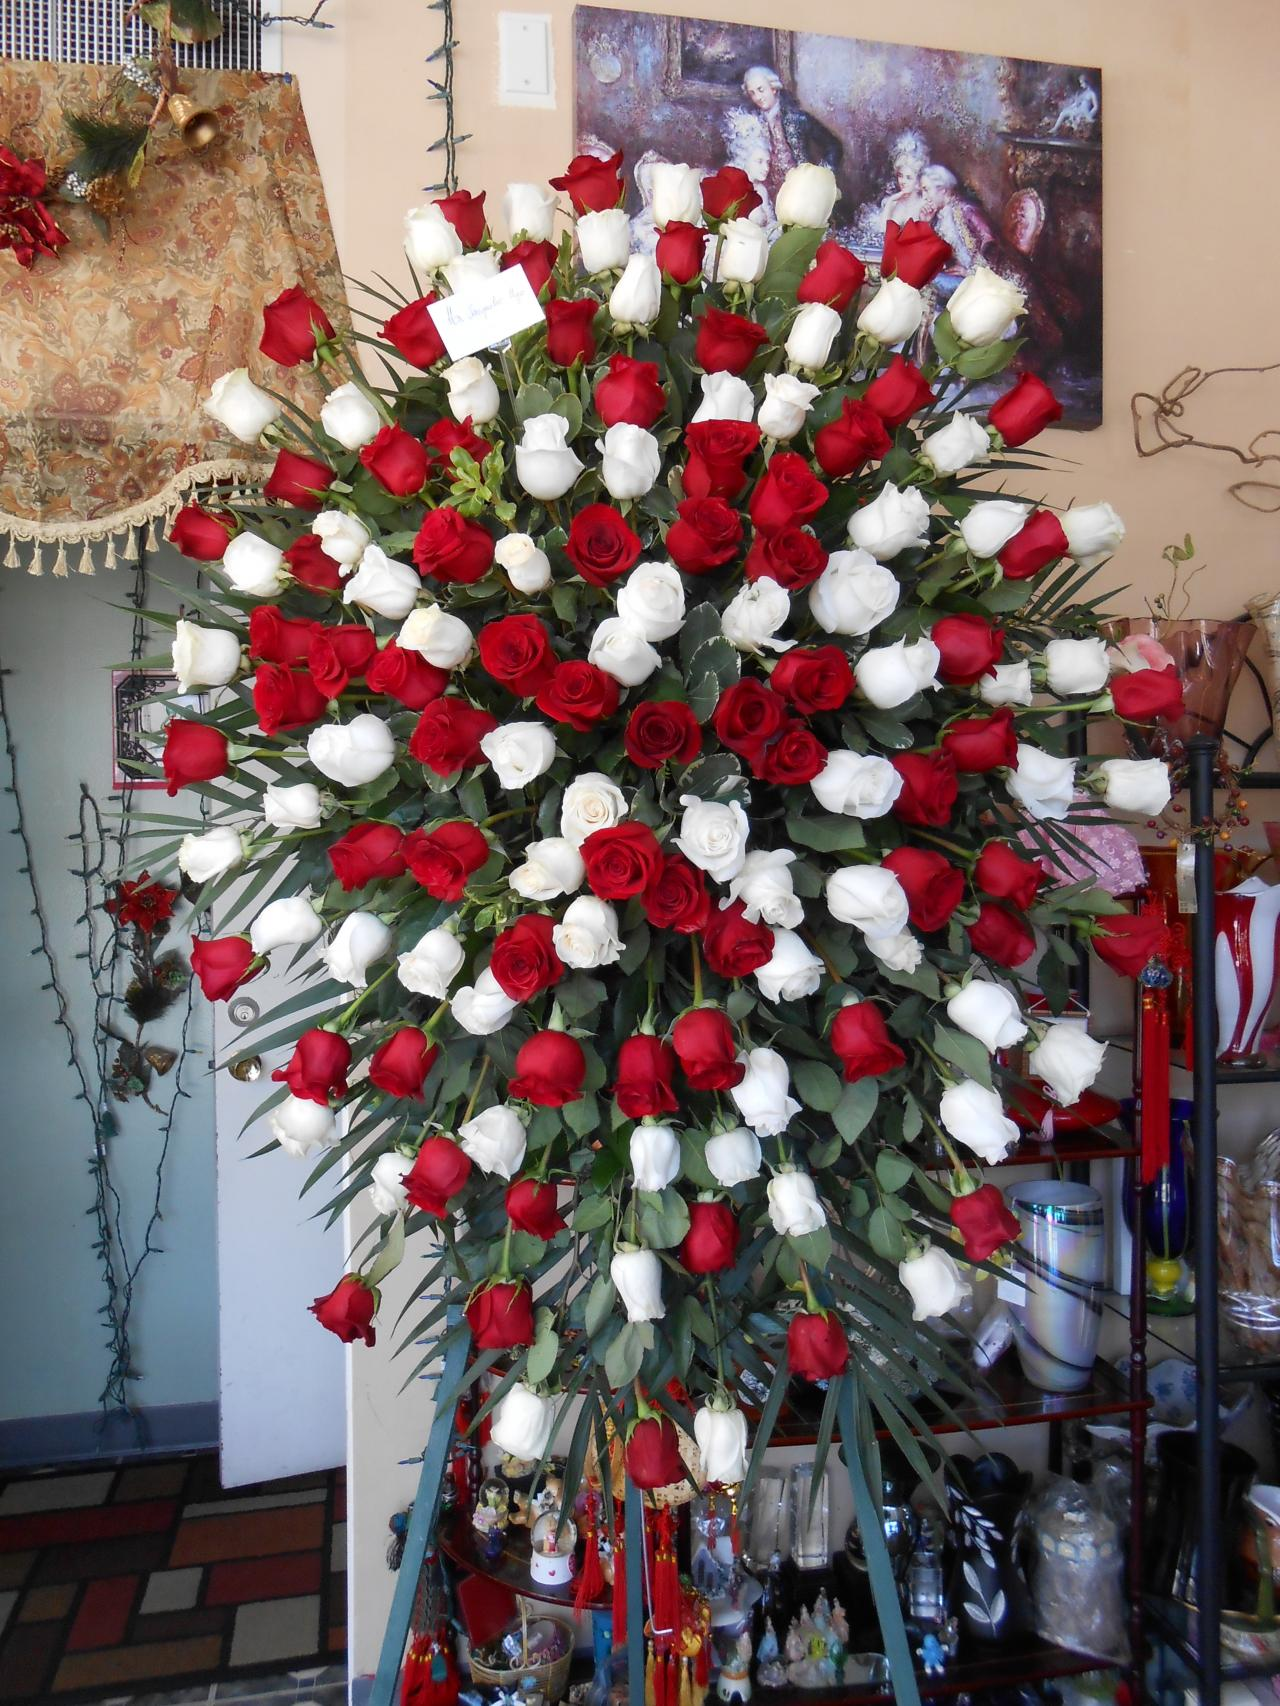 Van florist funeral theres plenty more at our store please come by our shop to see an abundance of funeral arrangements izmirmasajfo